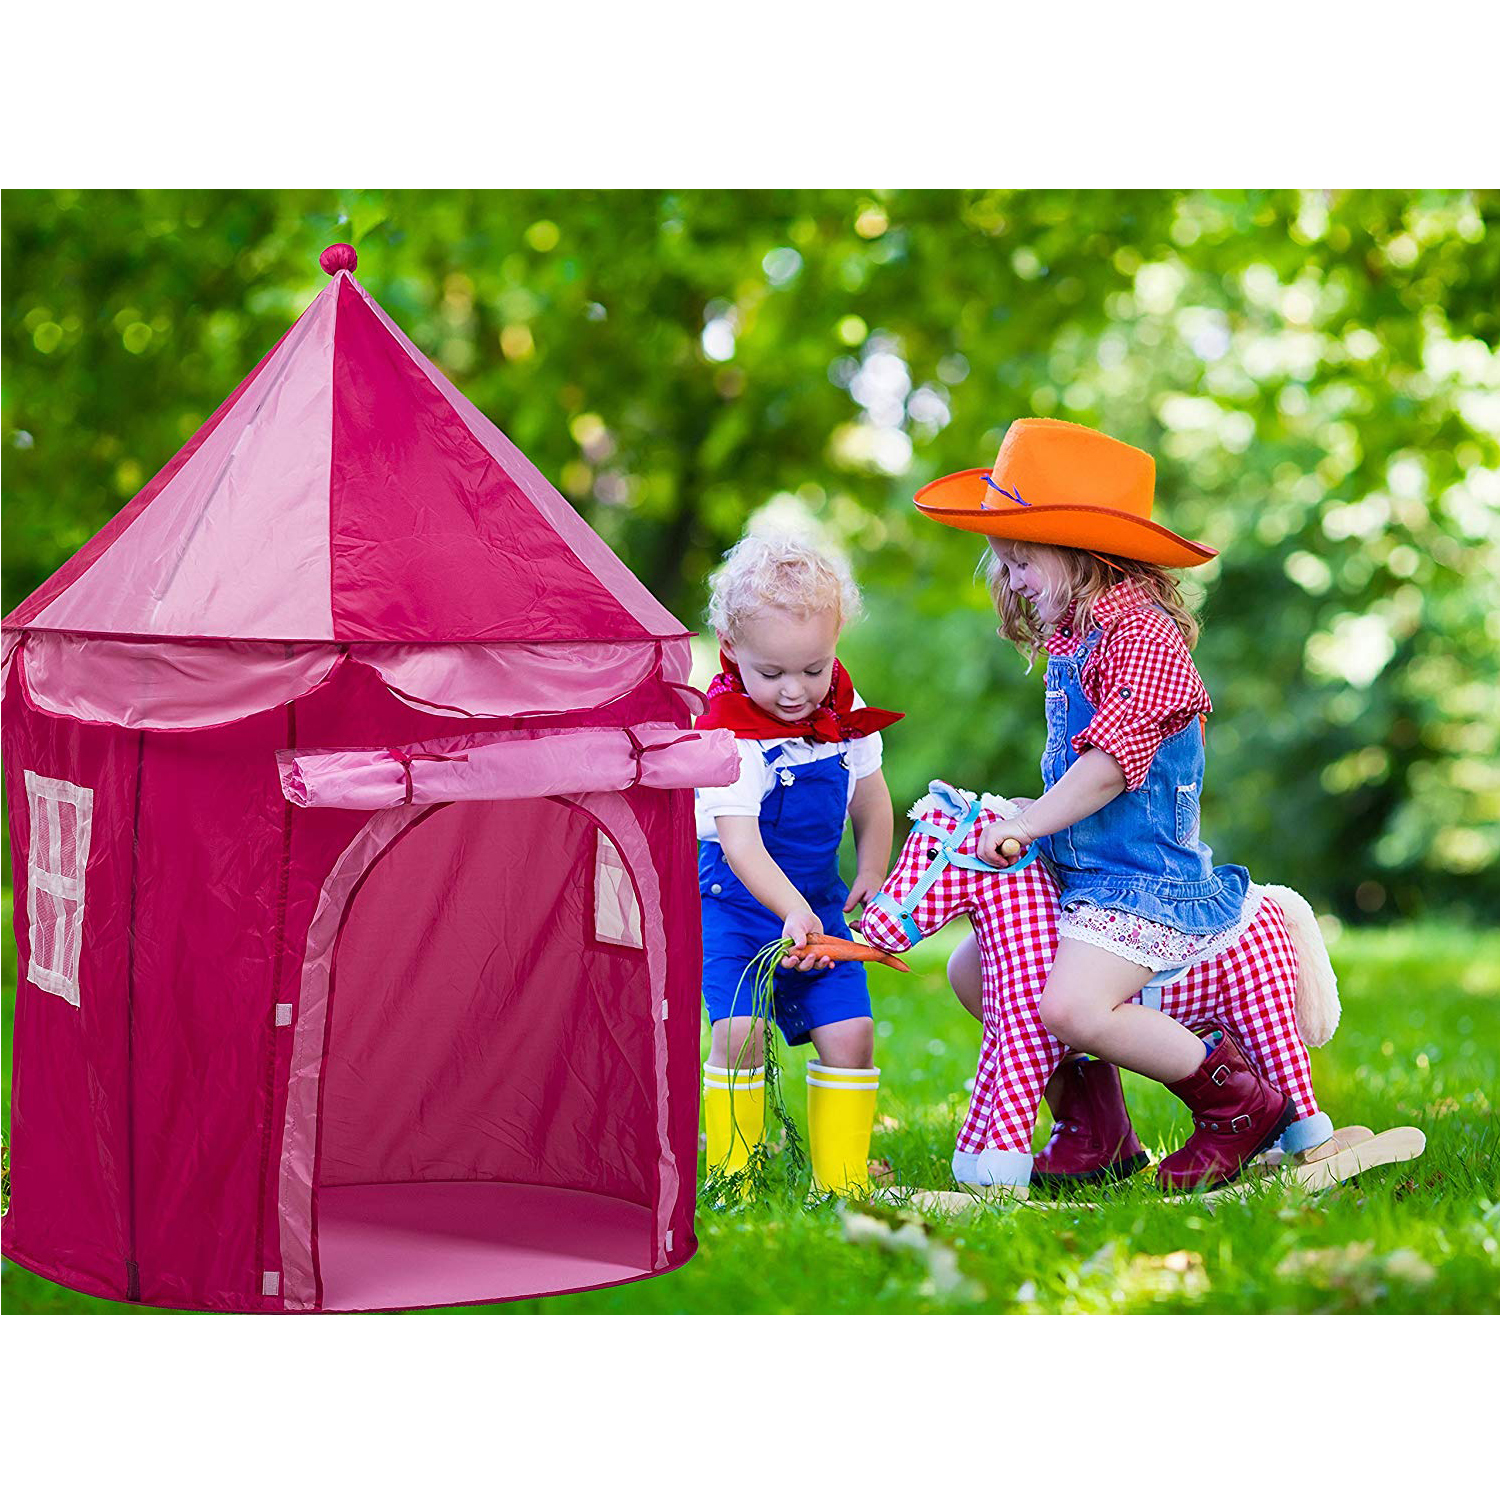 Kids Play Tent Kids Play Tent Princess Castle Foldable Indoor Outdoor Tent Girls Playhouse Pink